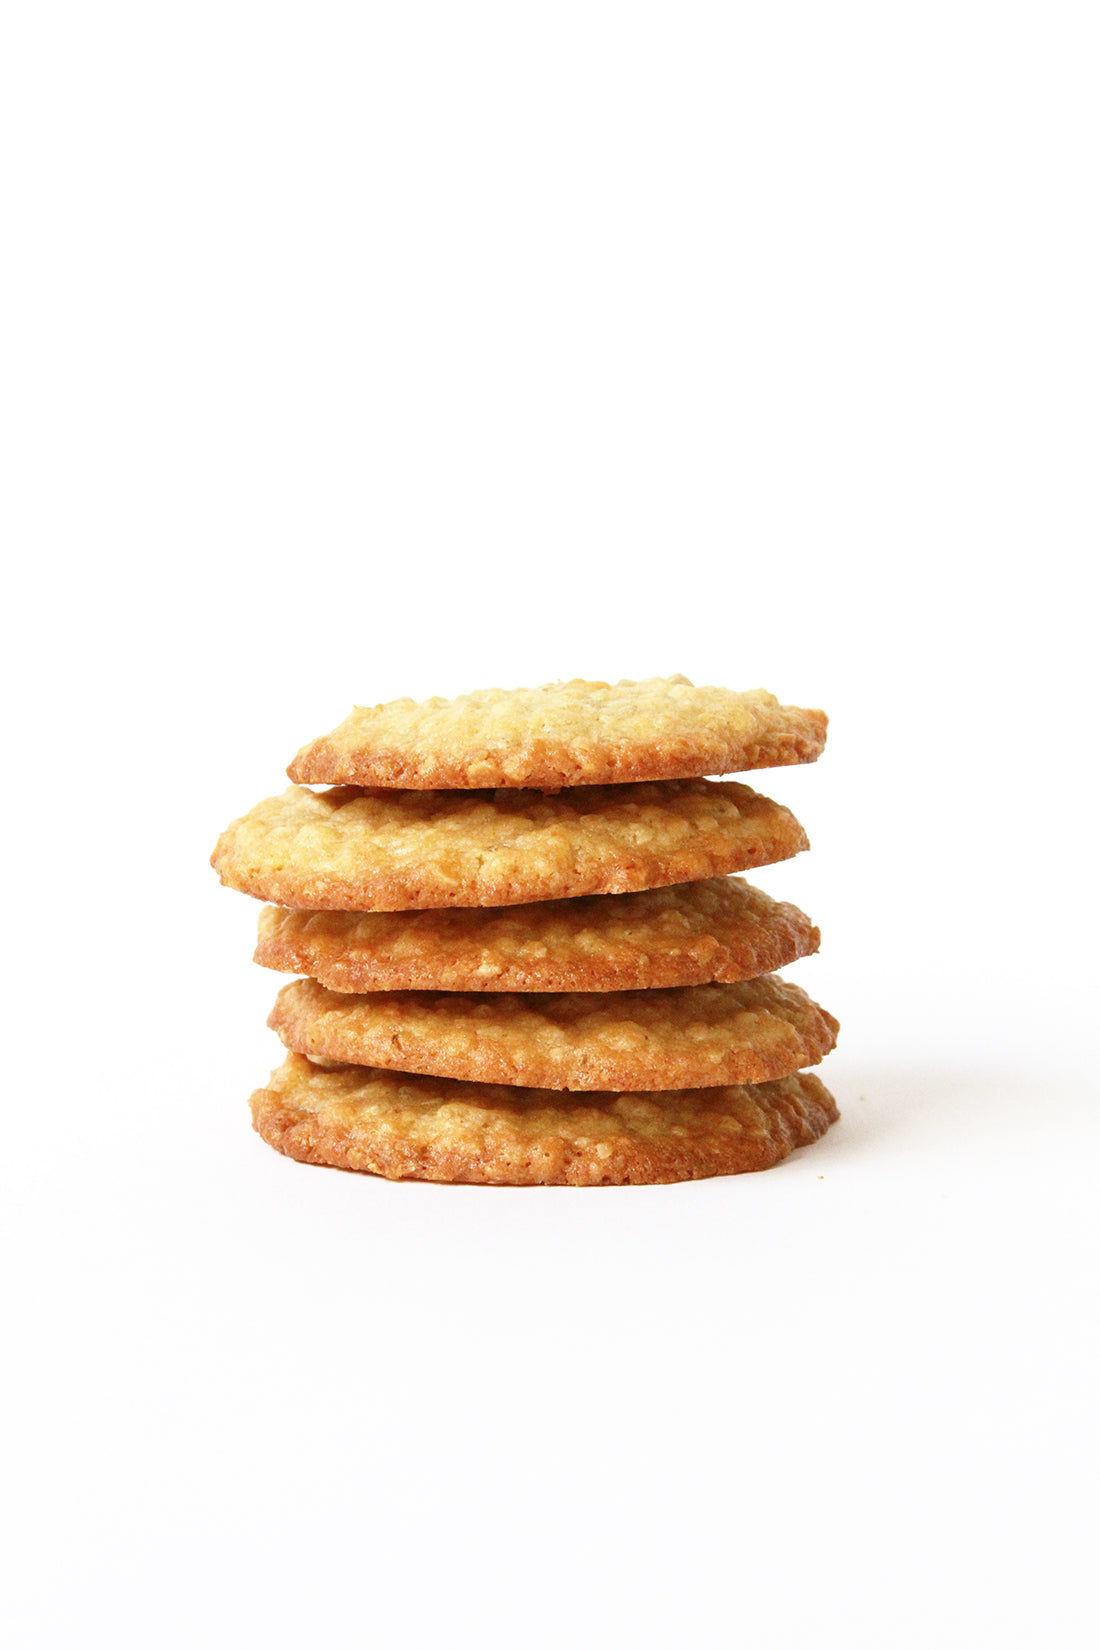 Image of a stack of five Miss Jones Baking Co Ginger Oatmeal Drop Cookies